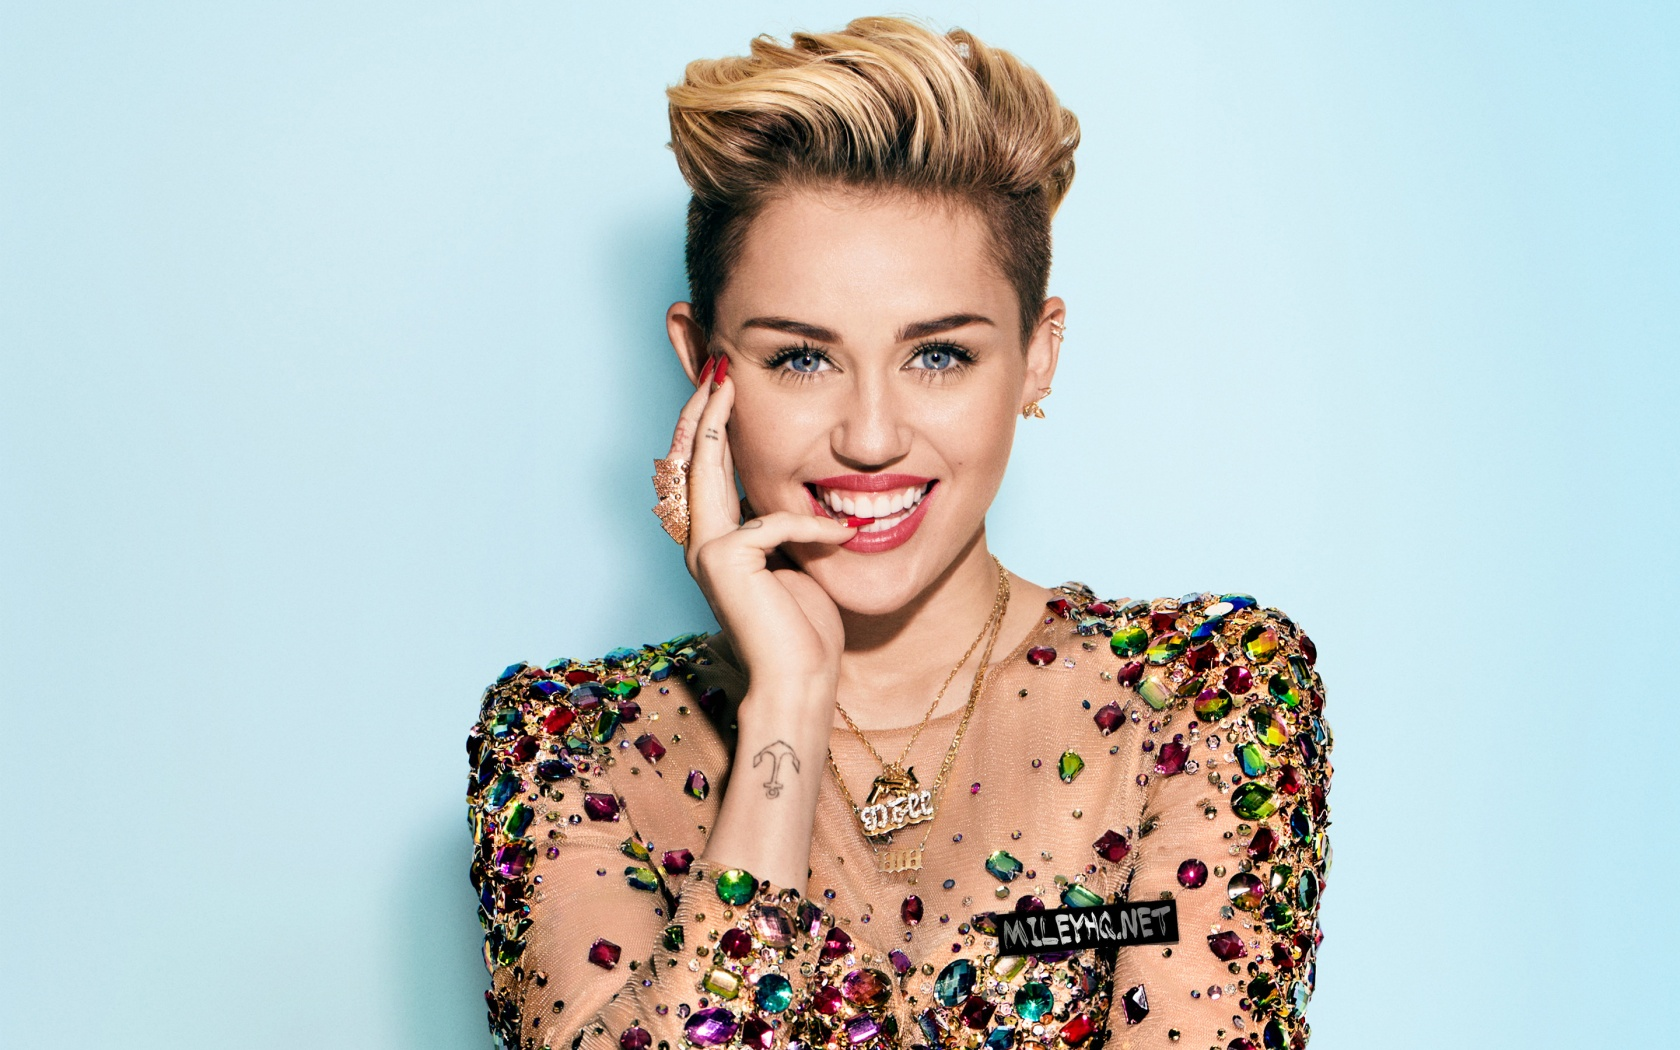 Miley cyrus school pictures Miley Cyrus Wikipedia, wolna encyklopedia